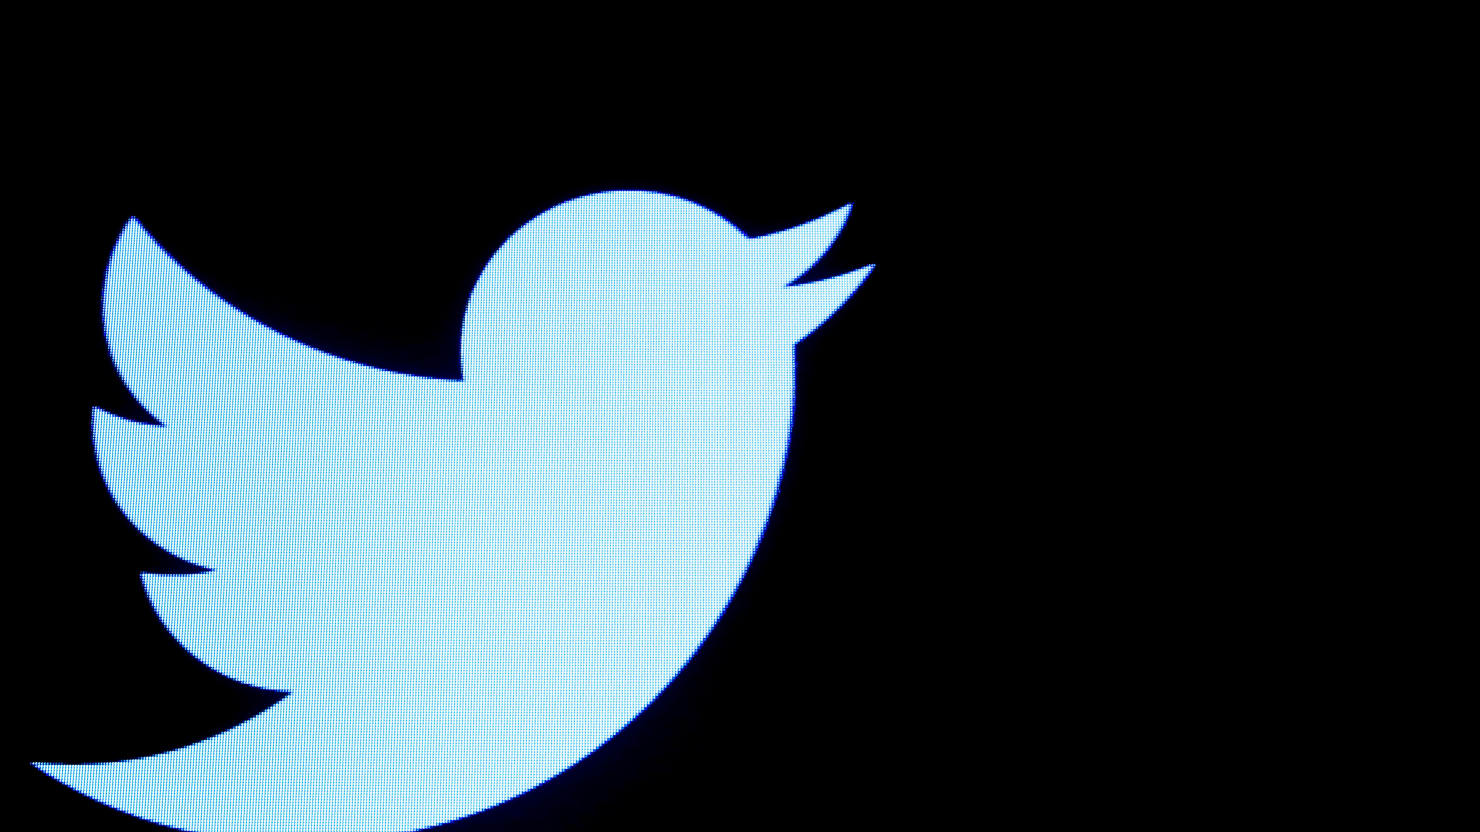 Twitter Apologizes For Blocking Anti-China Govt. Accounts Ahead of Tiananmen Square Anniversary